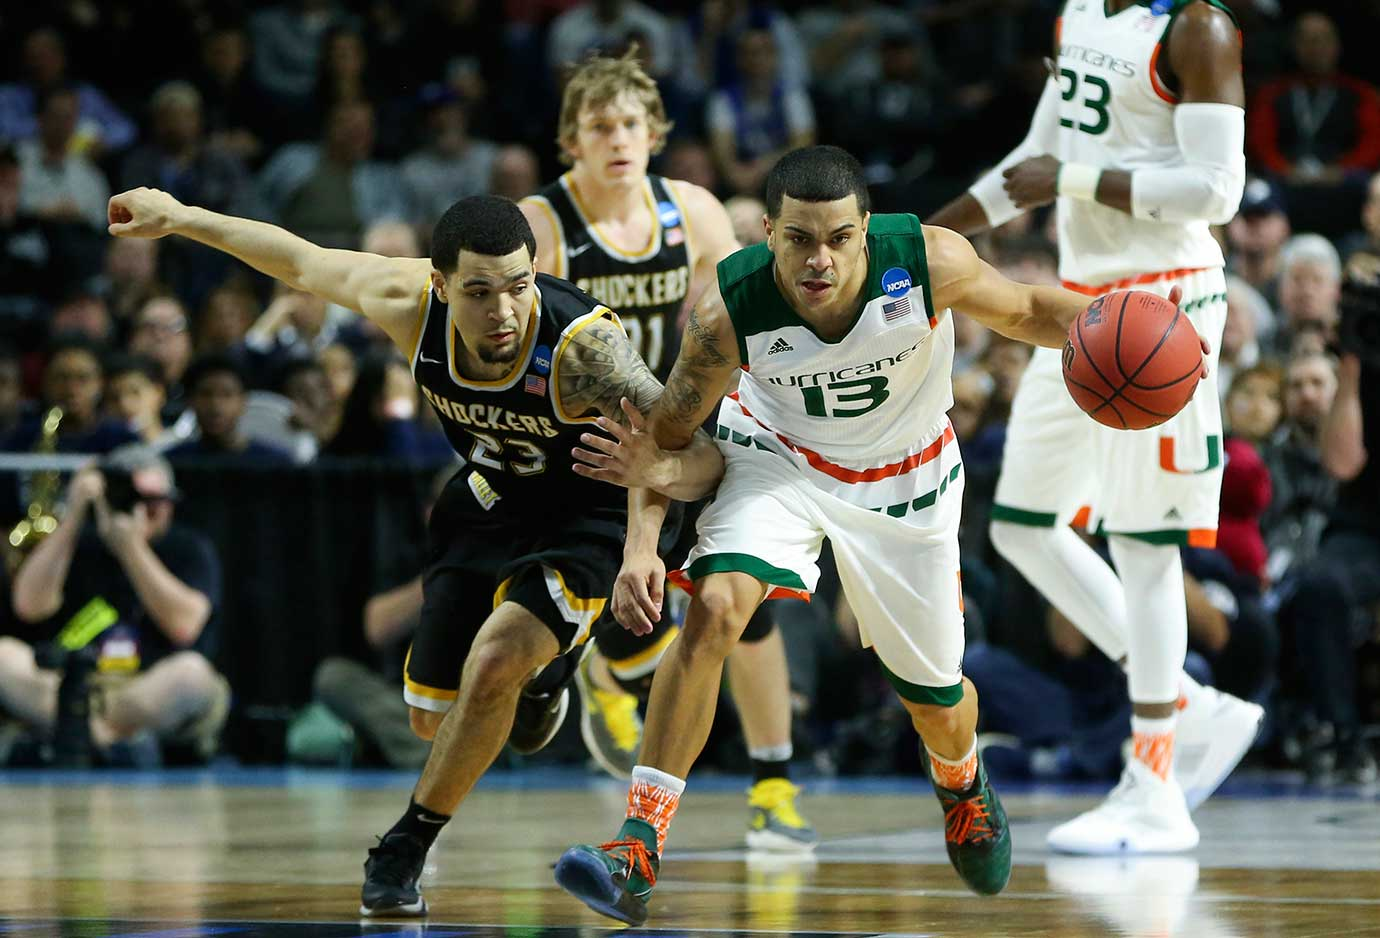 Wichita State's Fred VanVleet tries to steal the ball from Miami's Angel Rodriguez during the Hurricanes' 65-57 win.